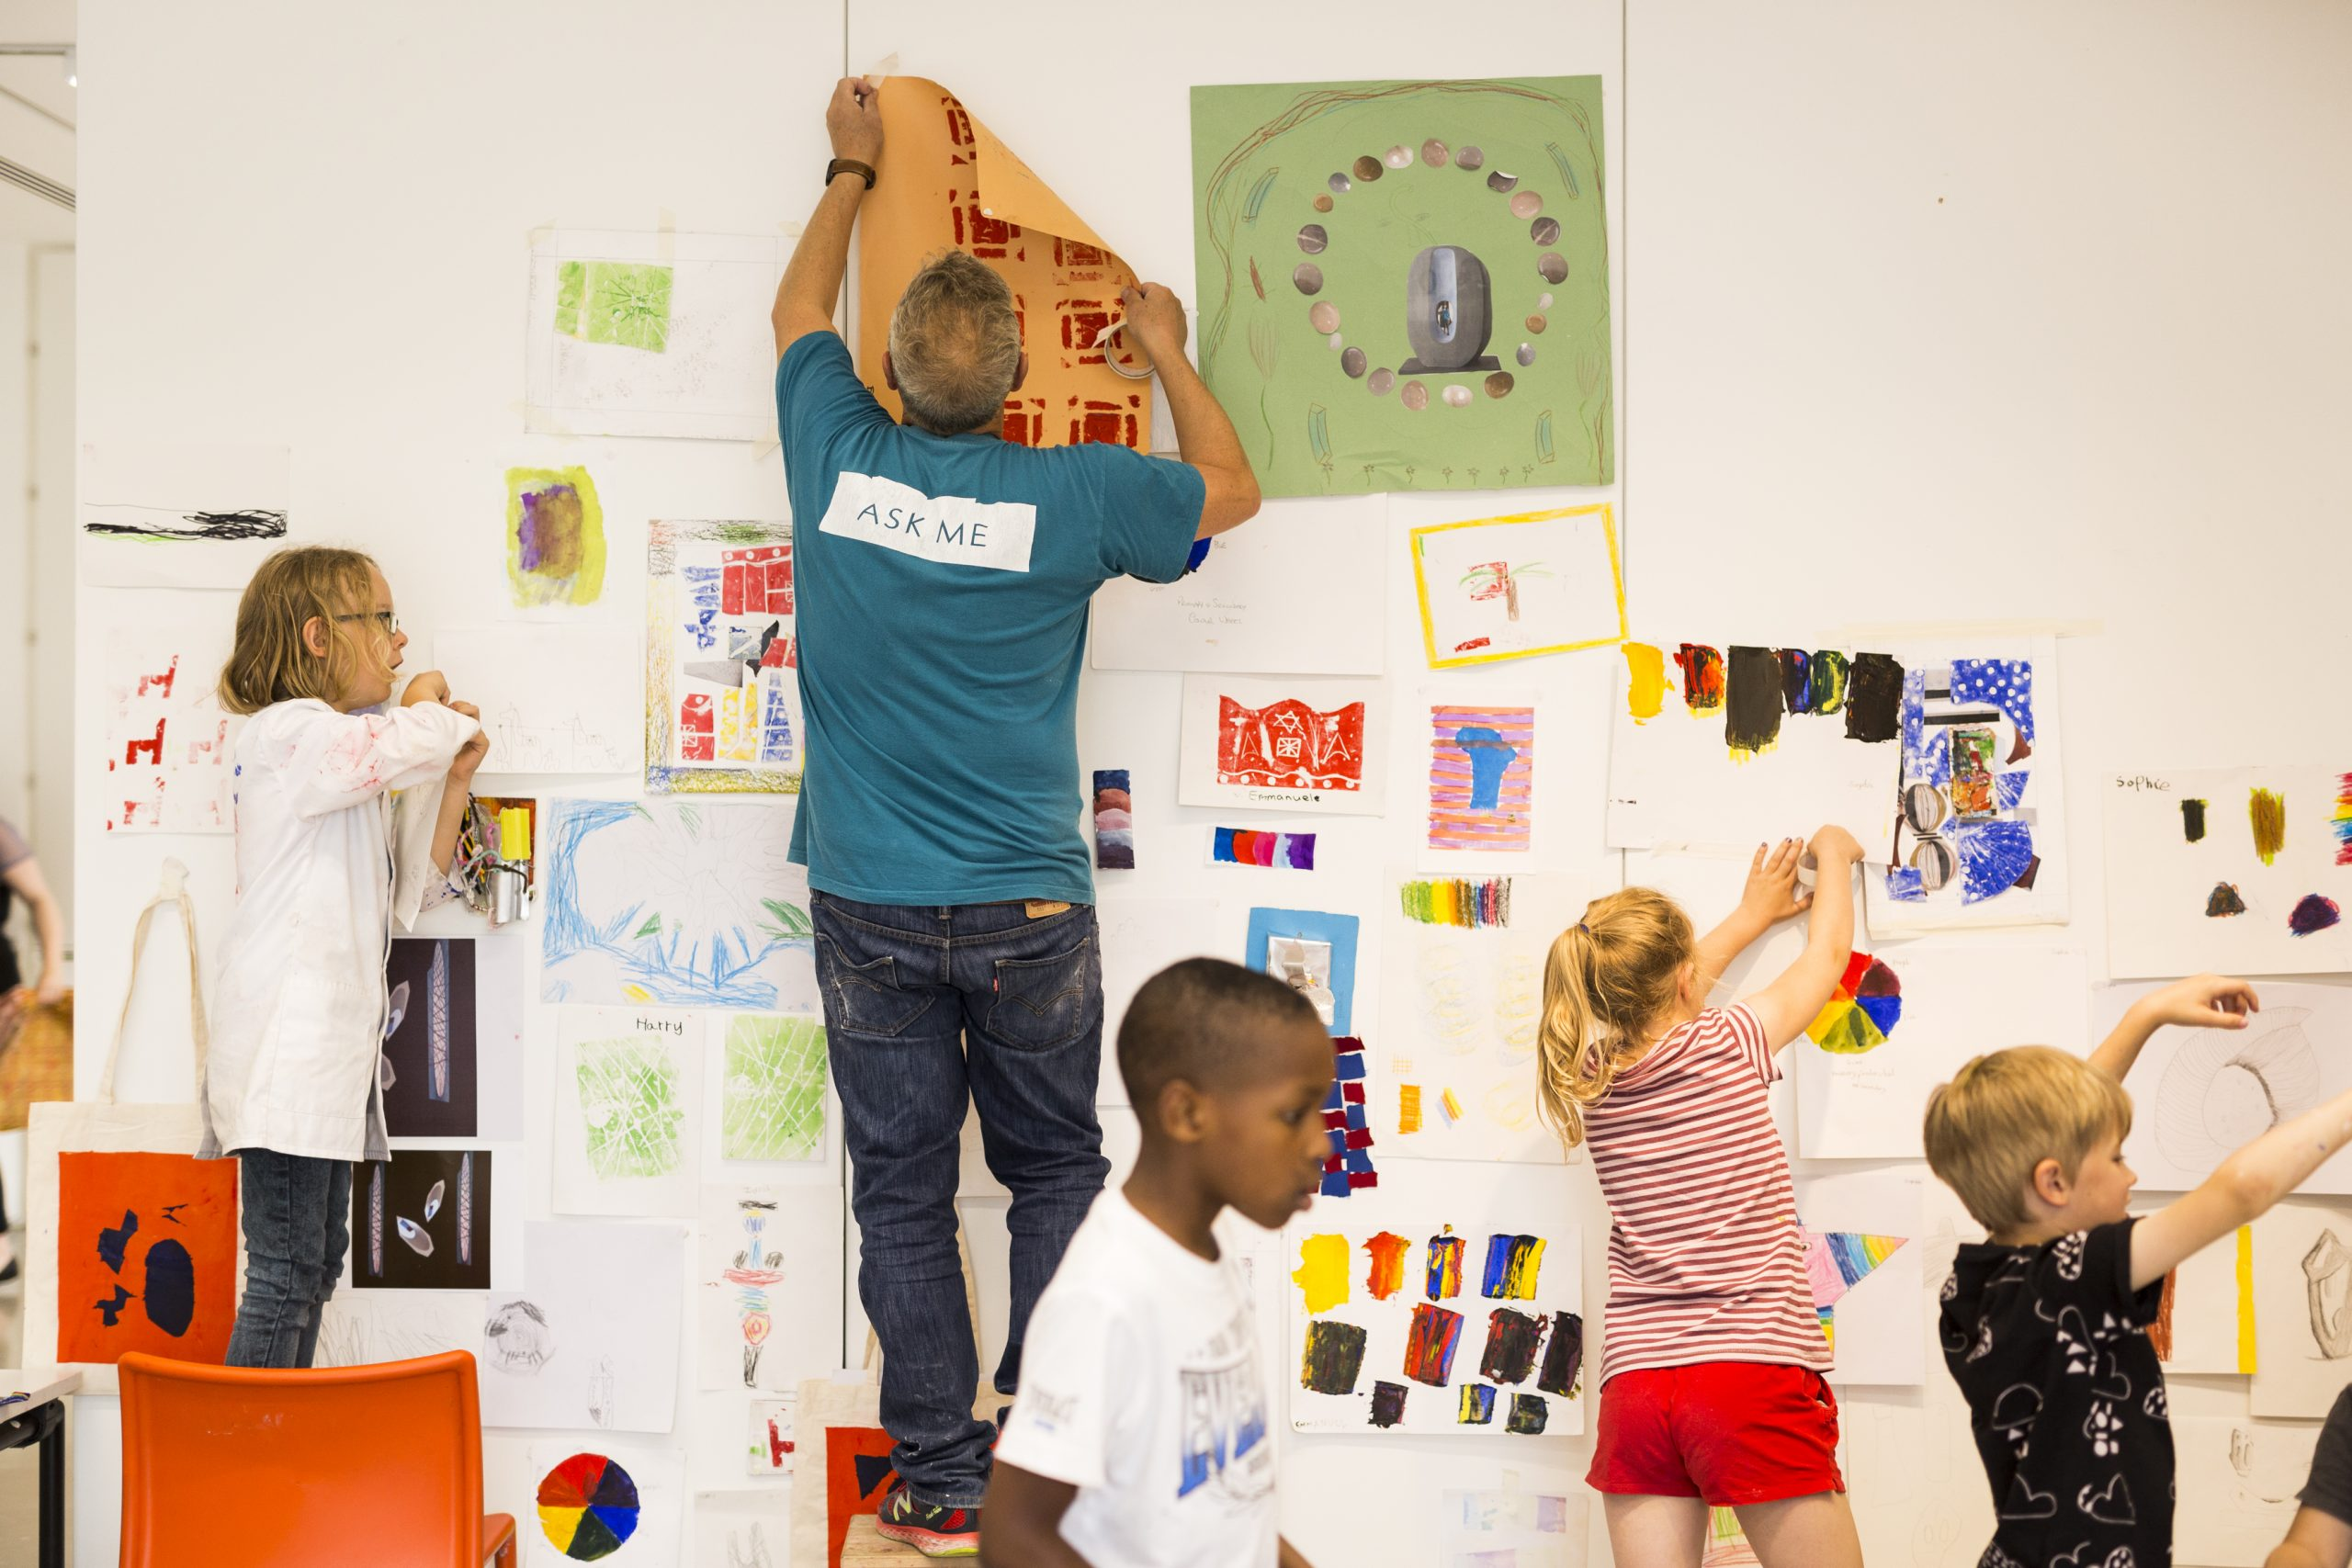 Art Club in the Clore Learning Studios at The Hepworth Wakefield. Photo Nick Singleton